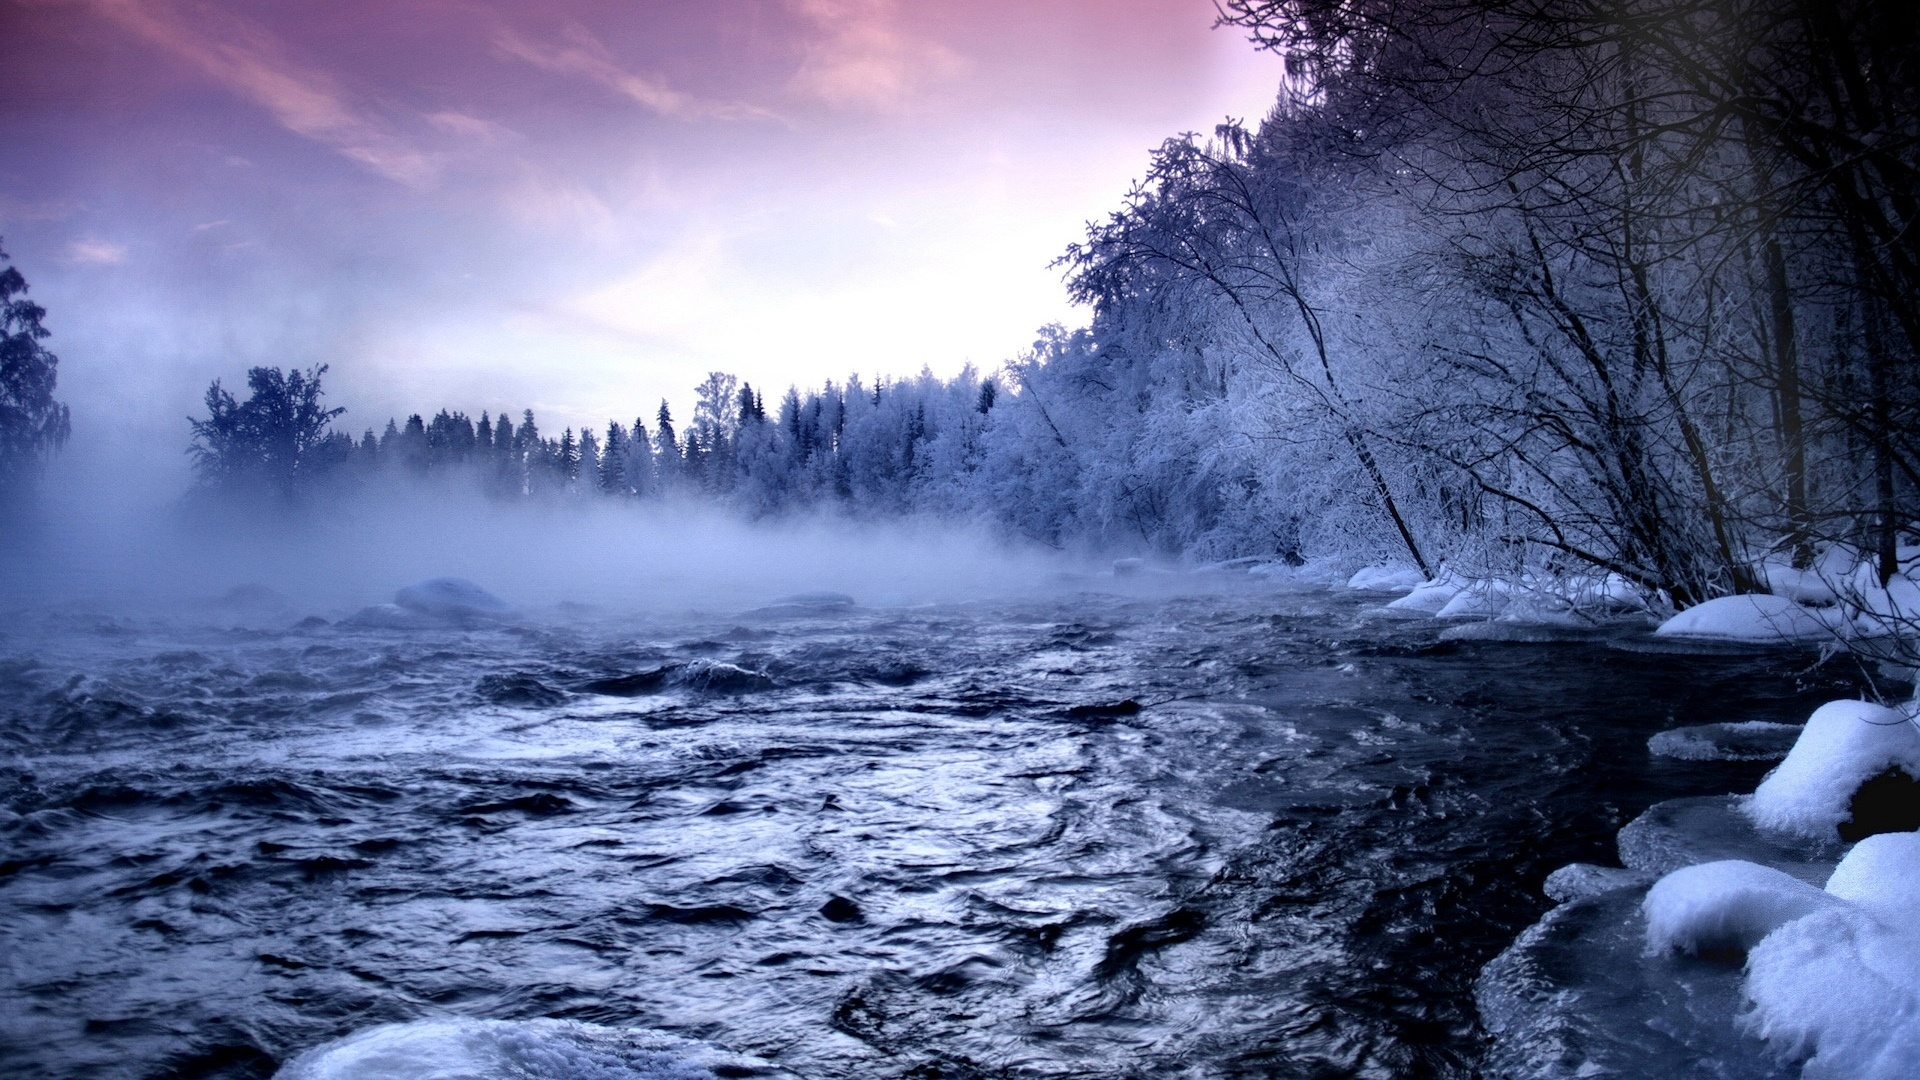 Beautiful Winter landscape 1920 x 1080 HDTV 1080p Wallpaper 1920x1080